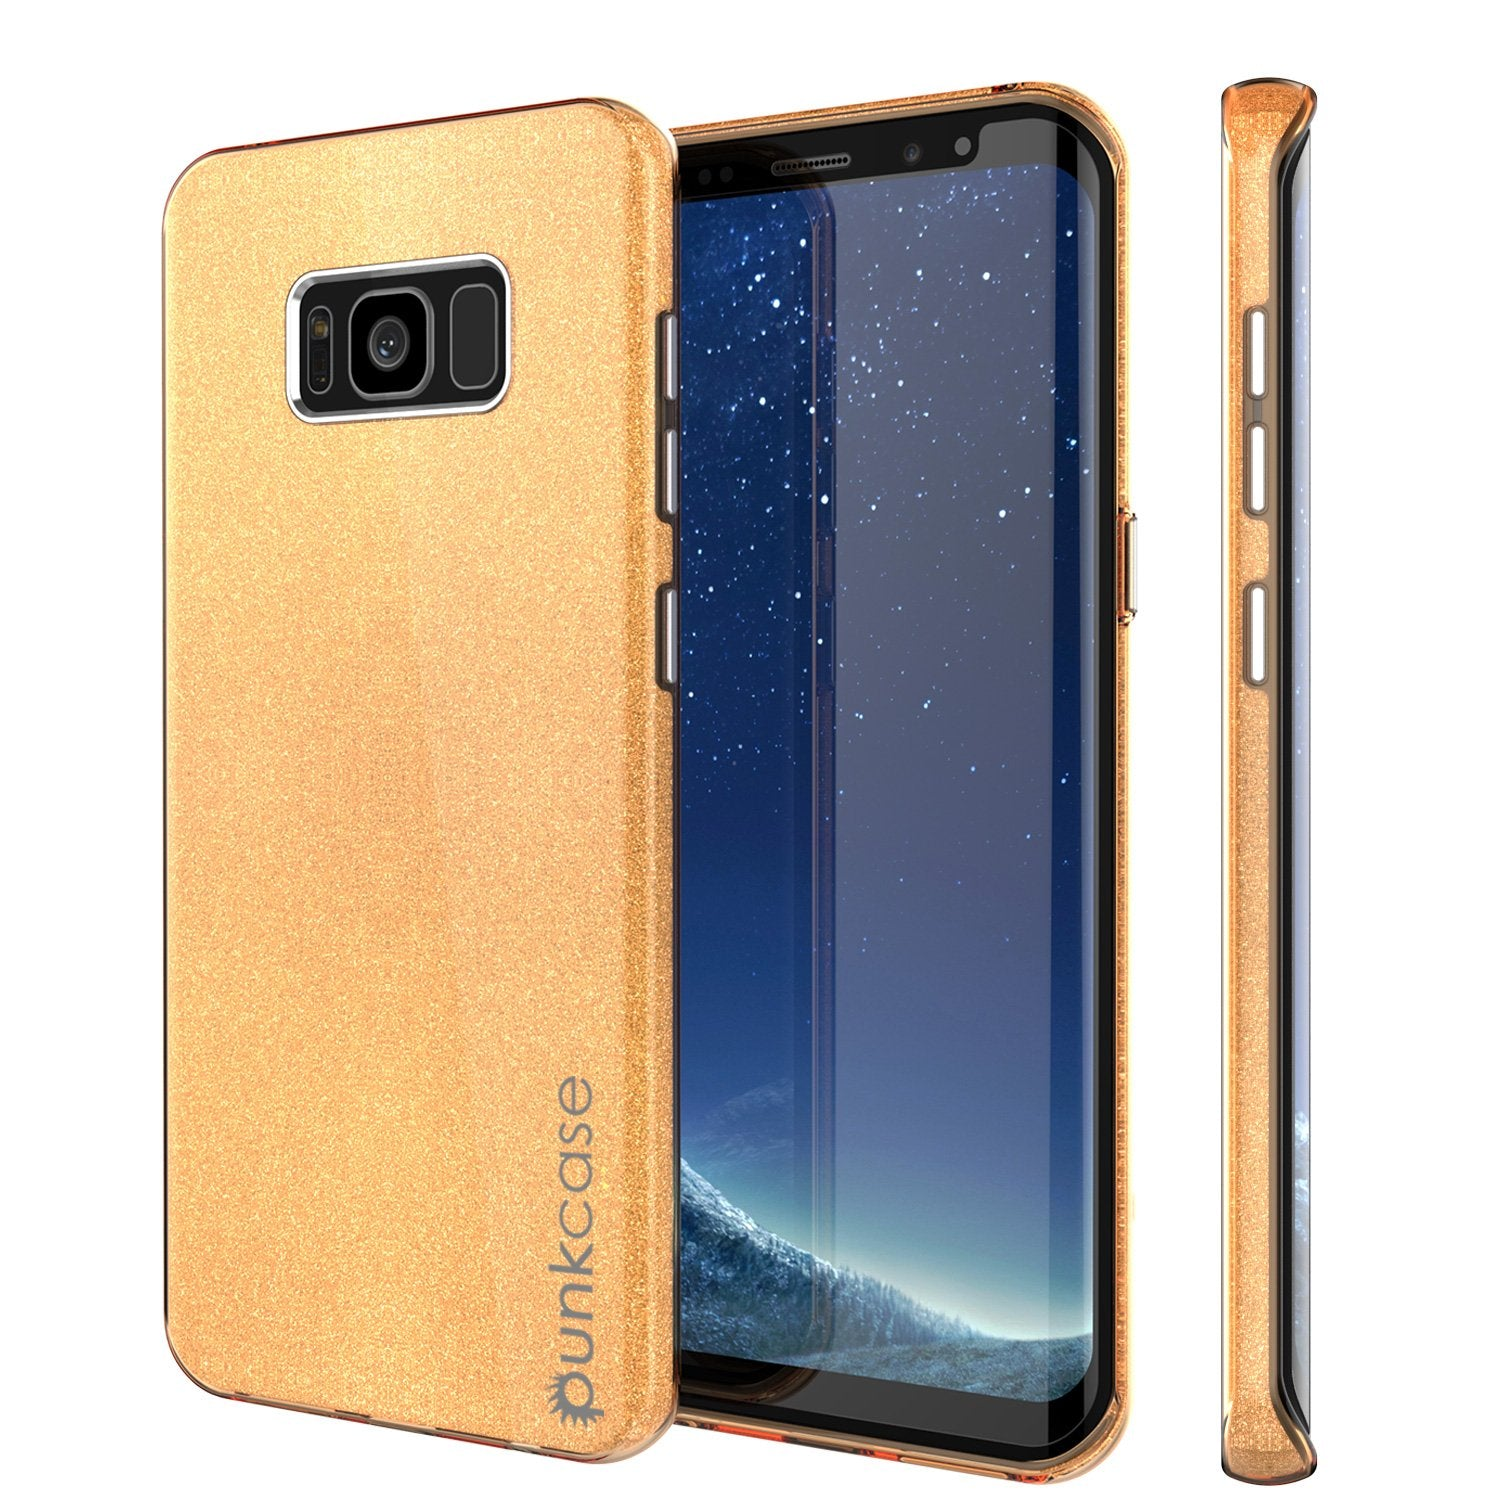 Galaxy S8 Plus Punkcase Galactic 2.0 Series Ultra Slim Case [Gold]